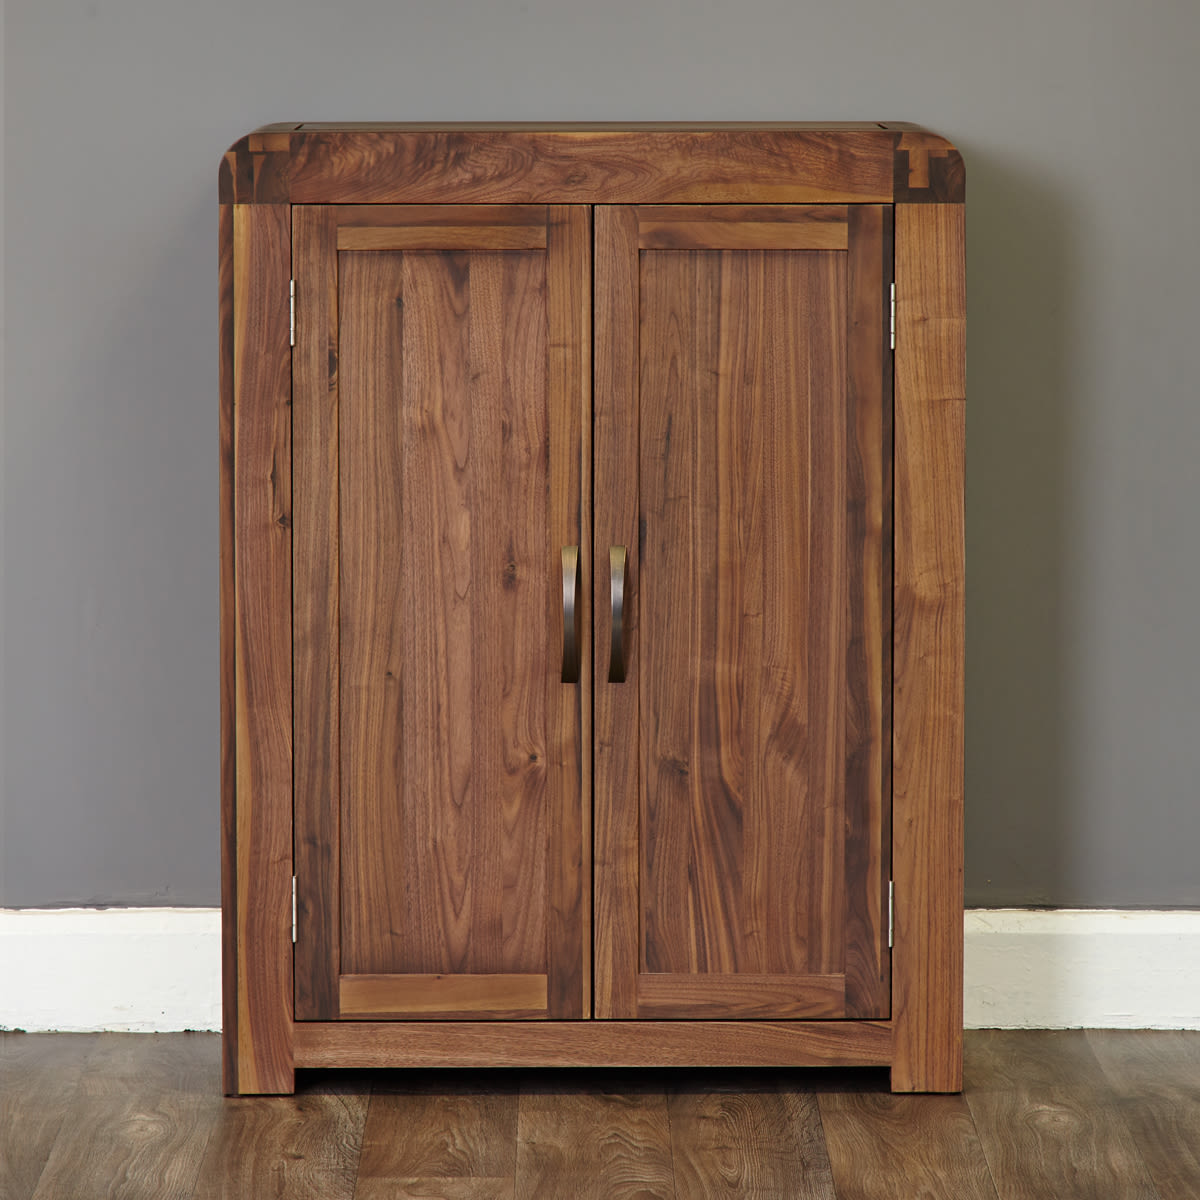 Walnut Wood Furniture ~ Shiro walnut shoe cupboard wooden furniture store